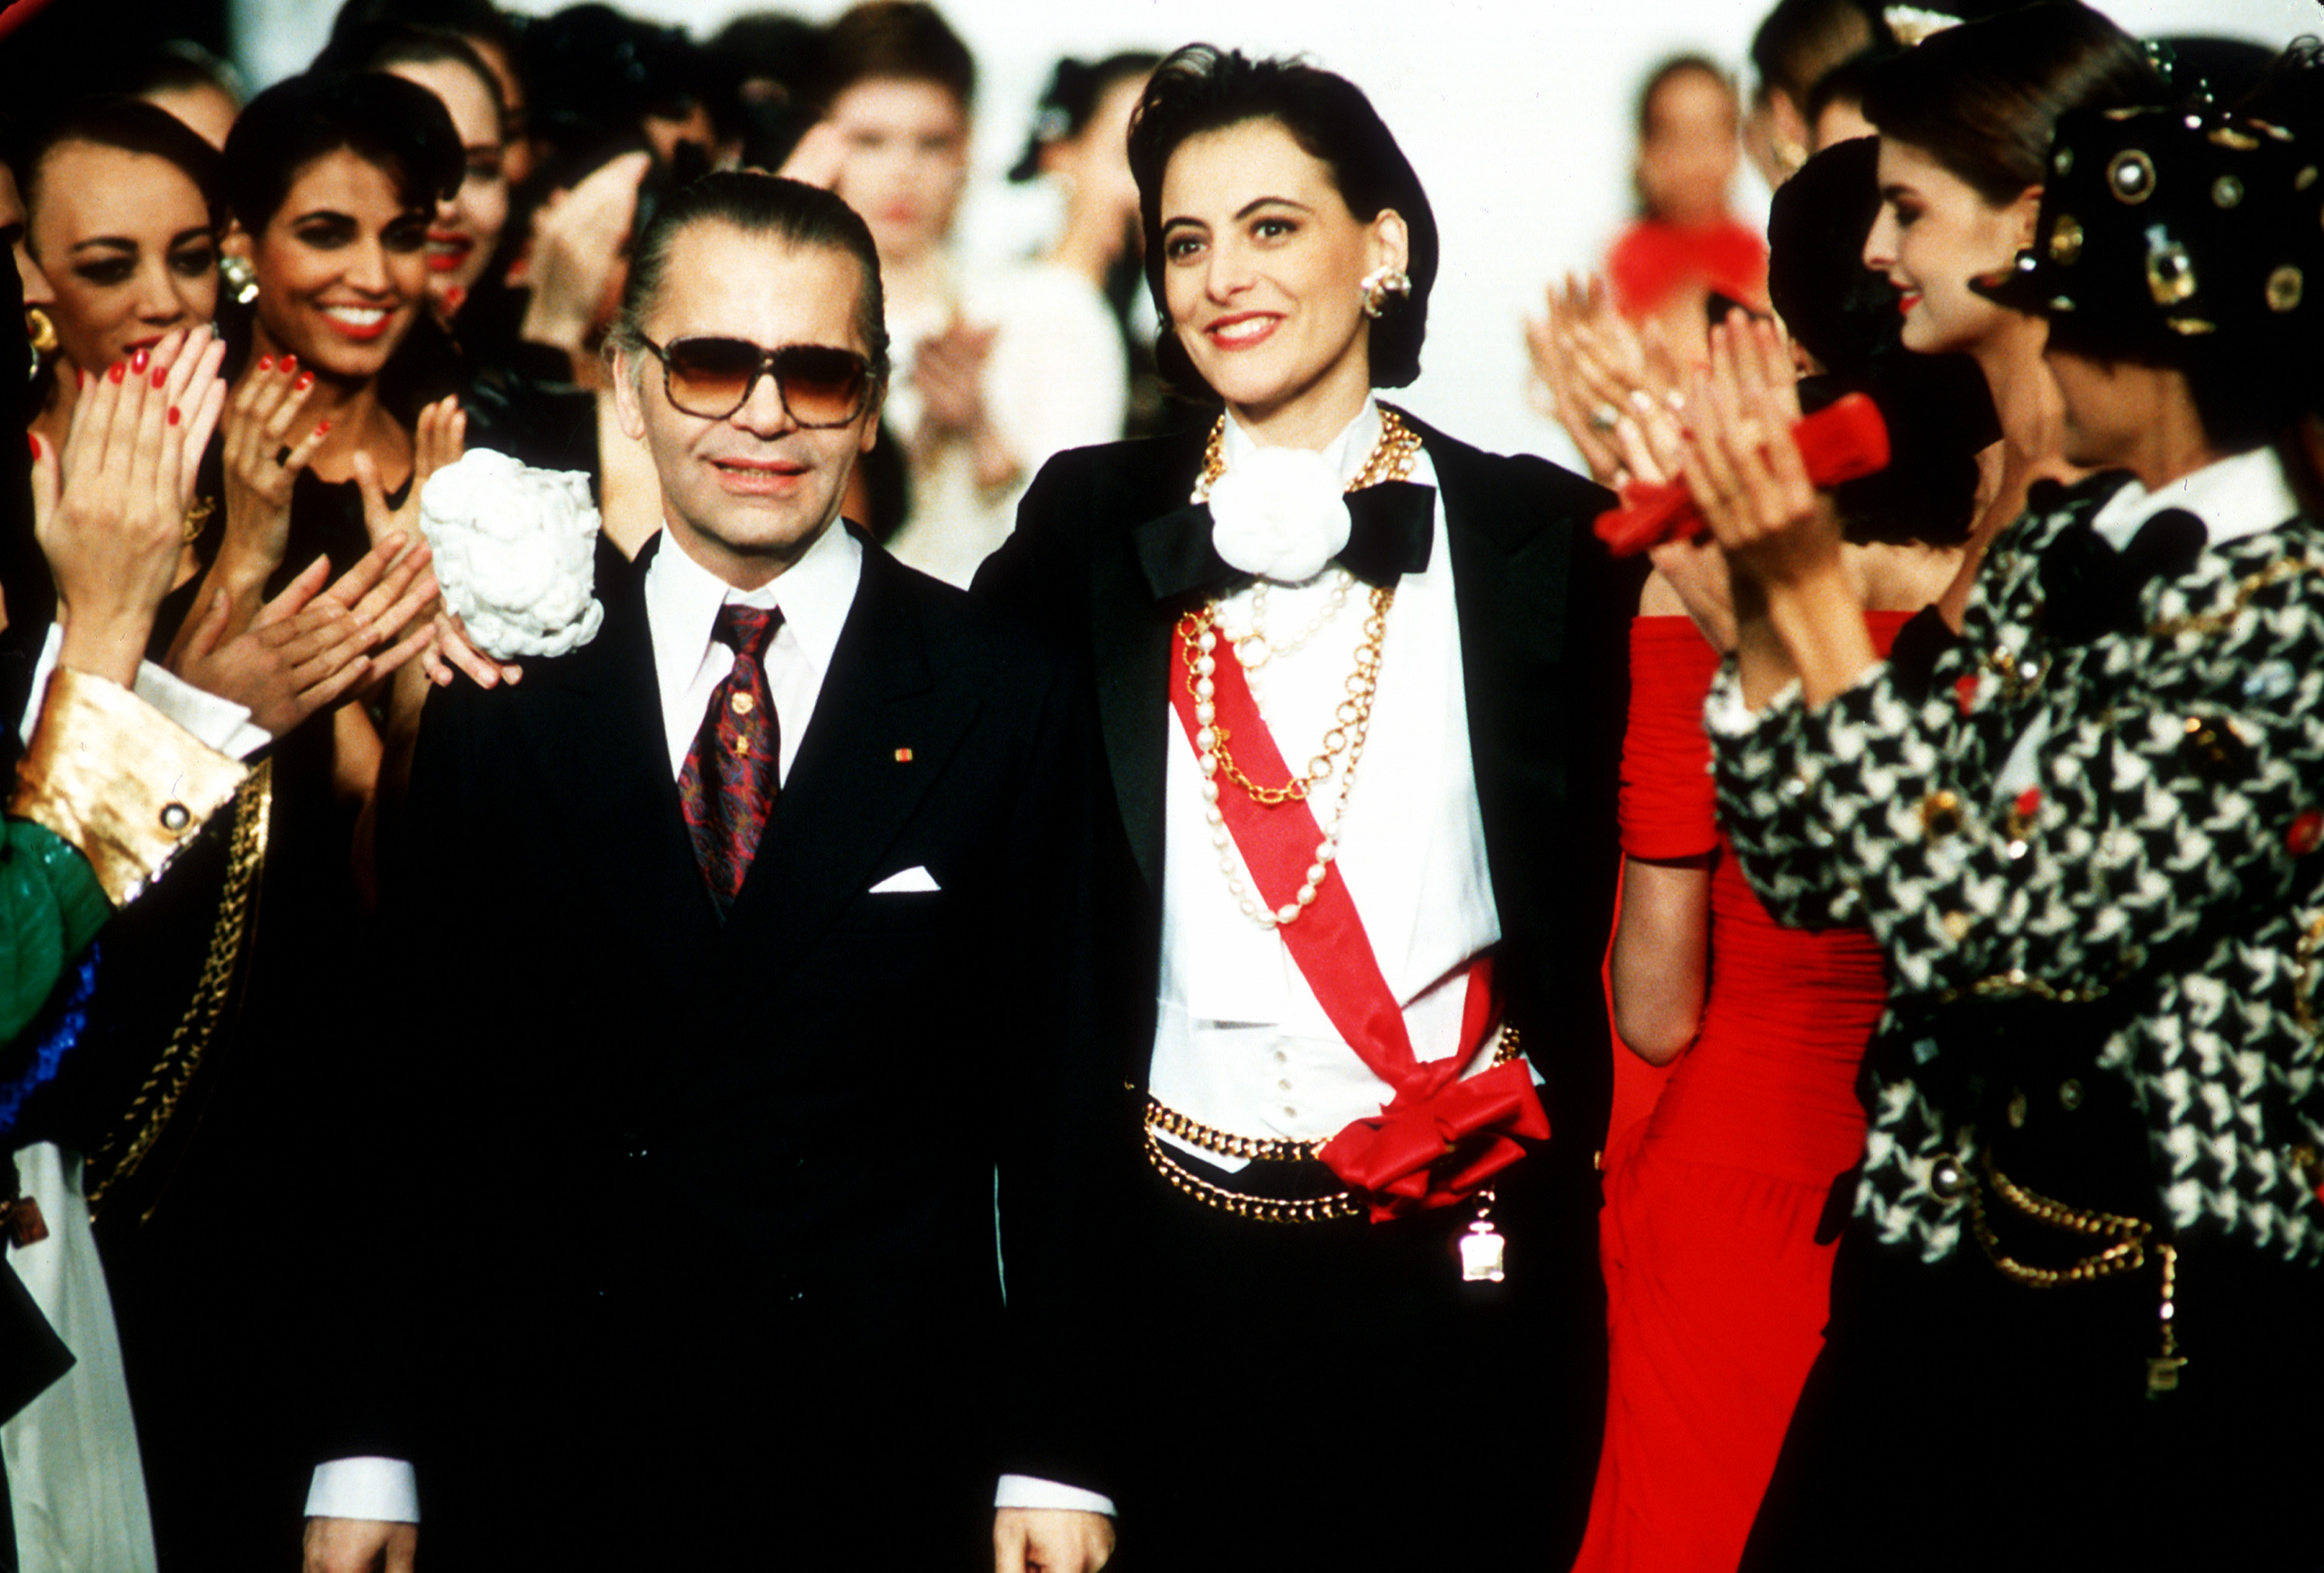 Chanel's top model Ines de la Fressange has her arm around West German designer Karl Lagerfeld as models applaud at the end of Chanel's fall and winter 1987 ready-to-wear collection in Paris, France, March 23, 1987.